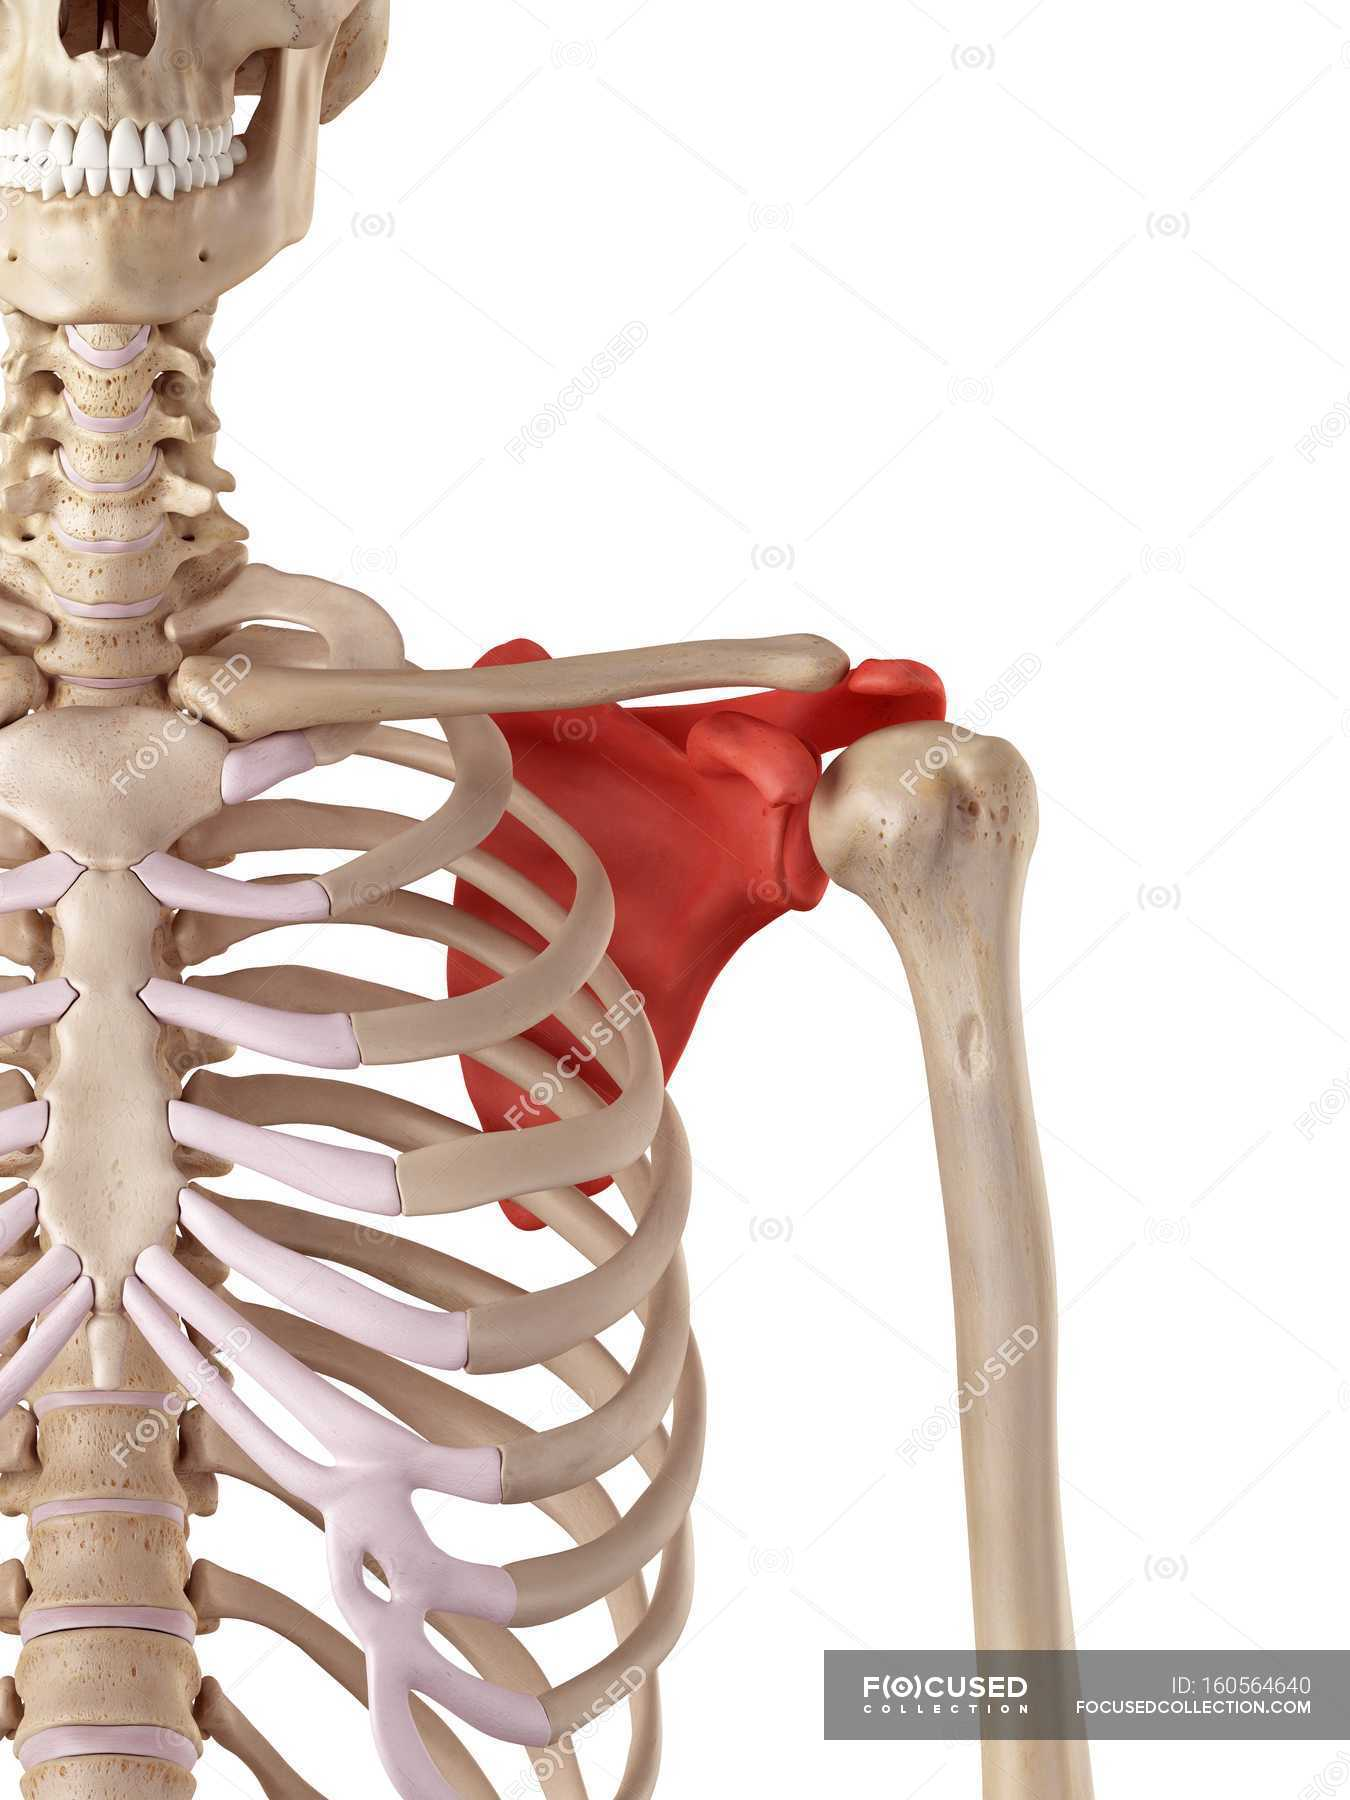 Human shoulder blade anatomy — Stock Photo | #160564640